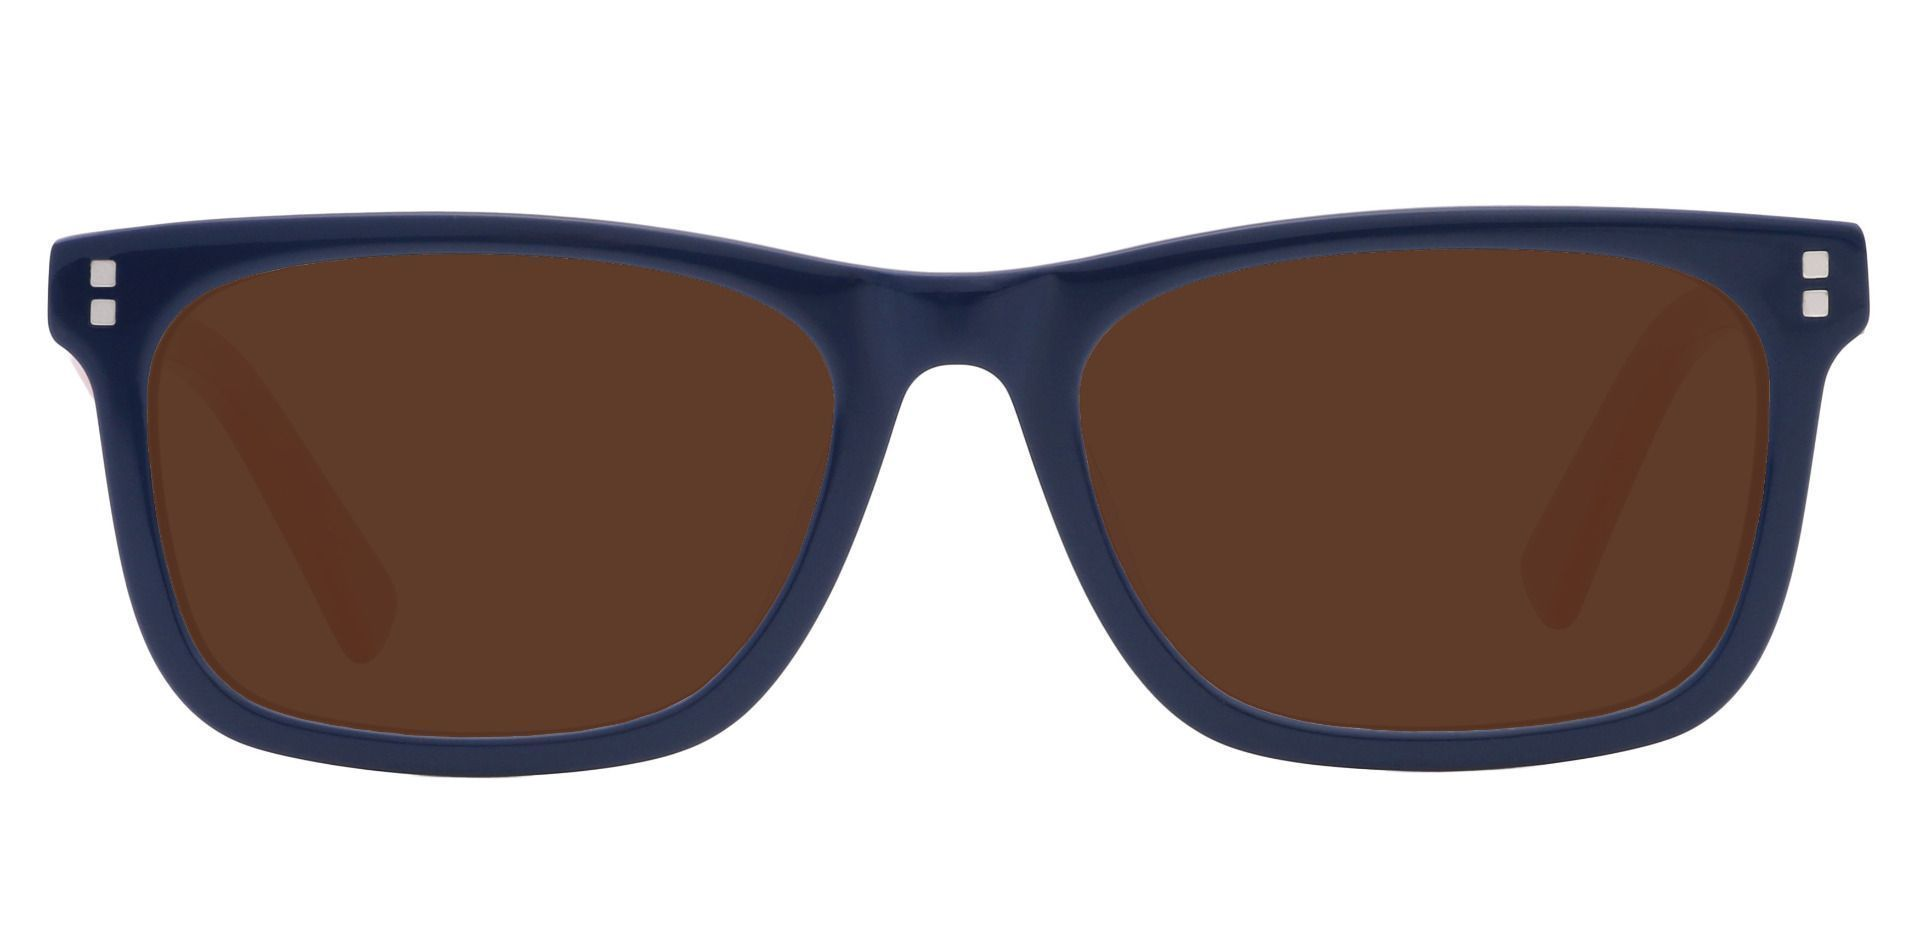 Harbor Rectangle Lined Bifocal Sunglasses - Blue Frame With Brown Lenses